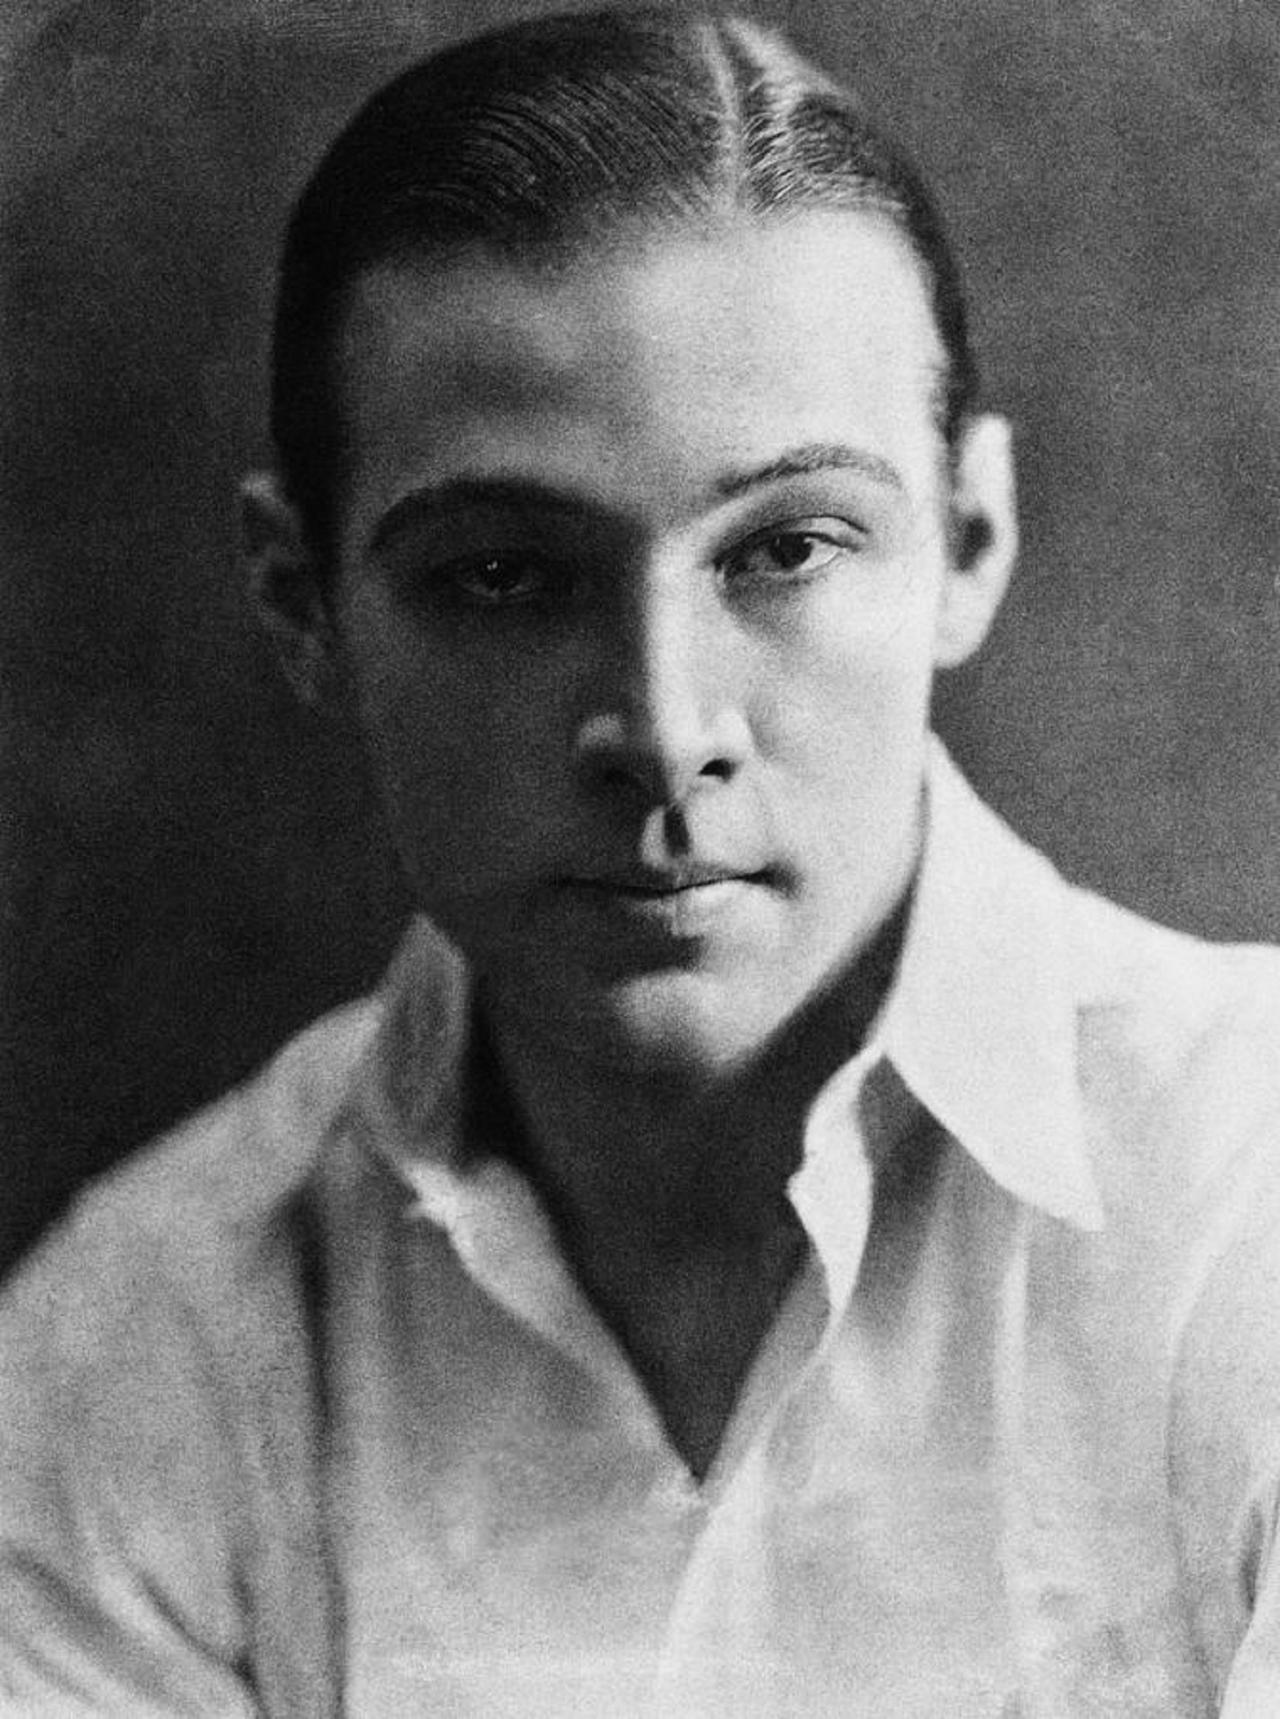 Rudolph Valentino, television, film, famous, actor, HQ Photo